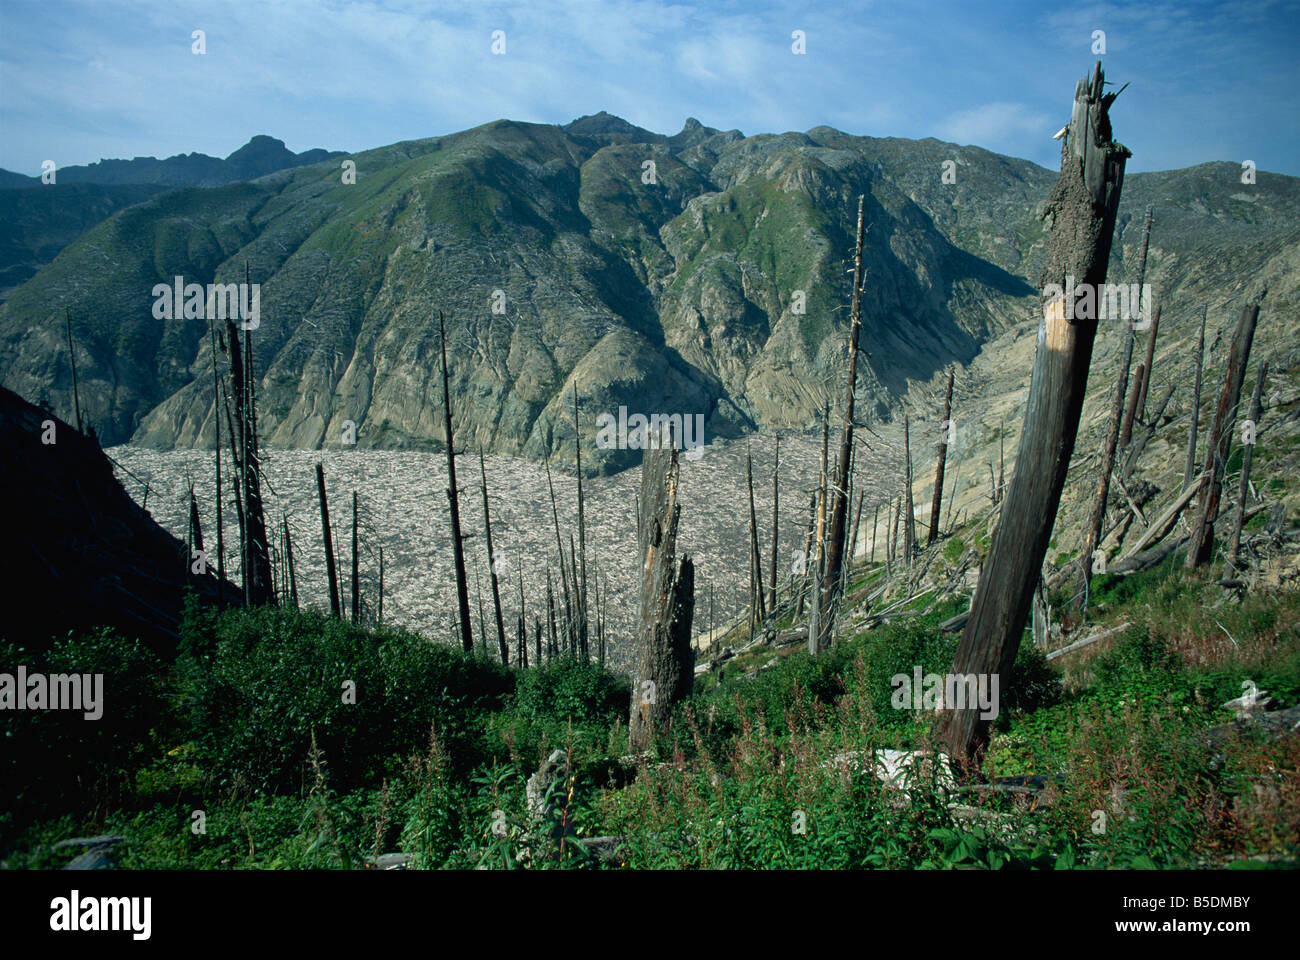 Trees flattened by eruption, and dead trees on Spirit Lake, Mount St. Helens National Volcanic Monument, Washington - Stock Image